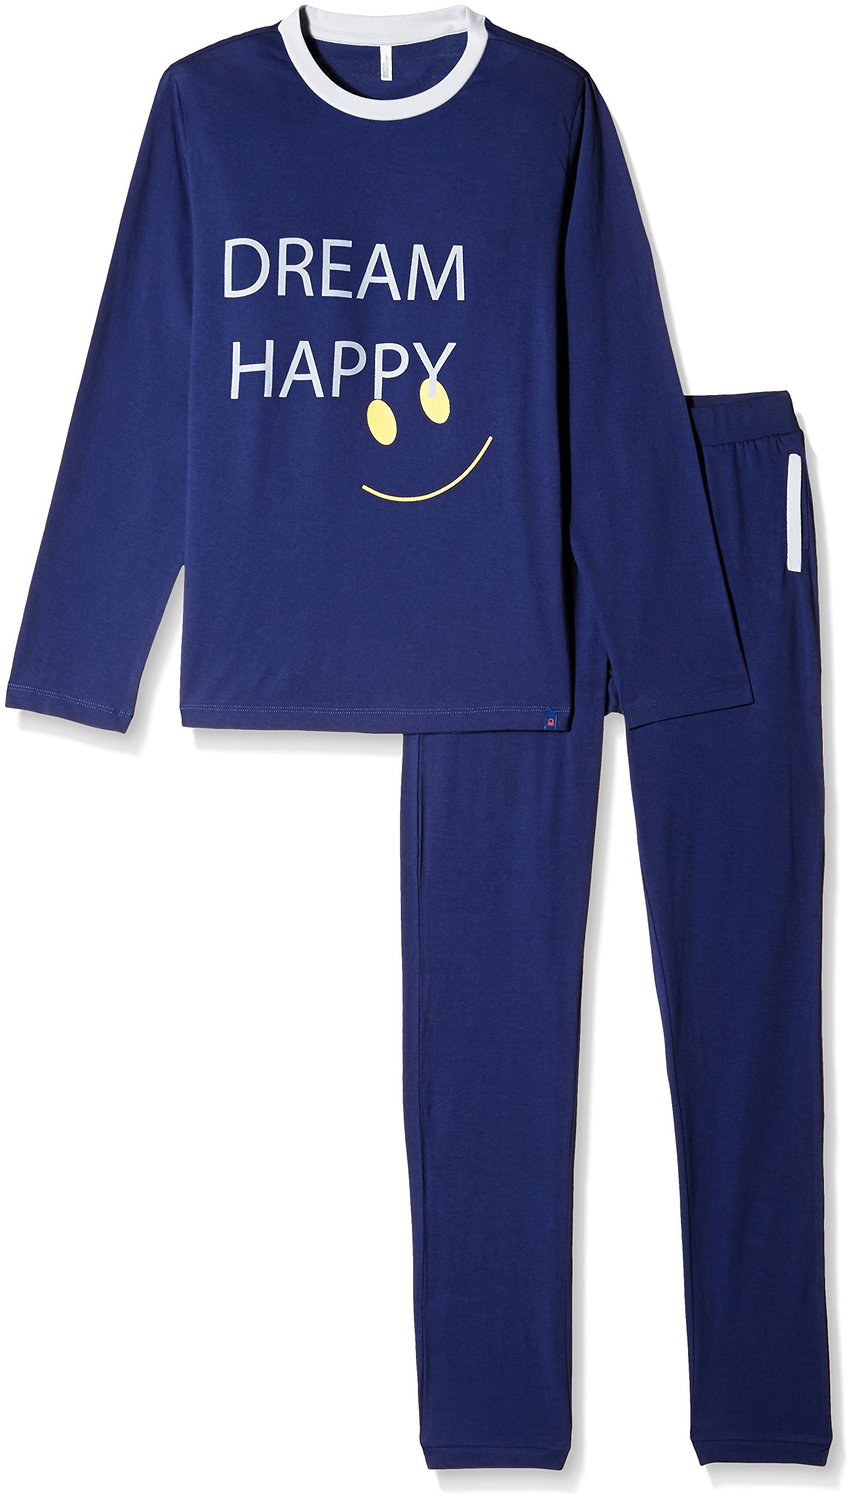 Undercolors Boys' Pyjama for Rs 454 (65% off)